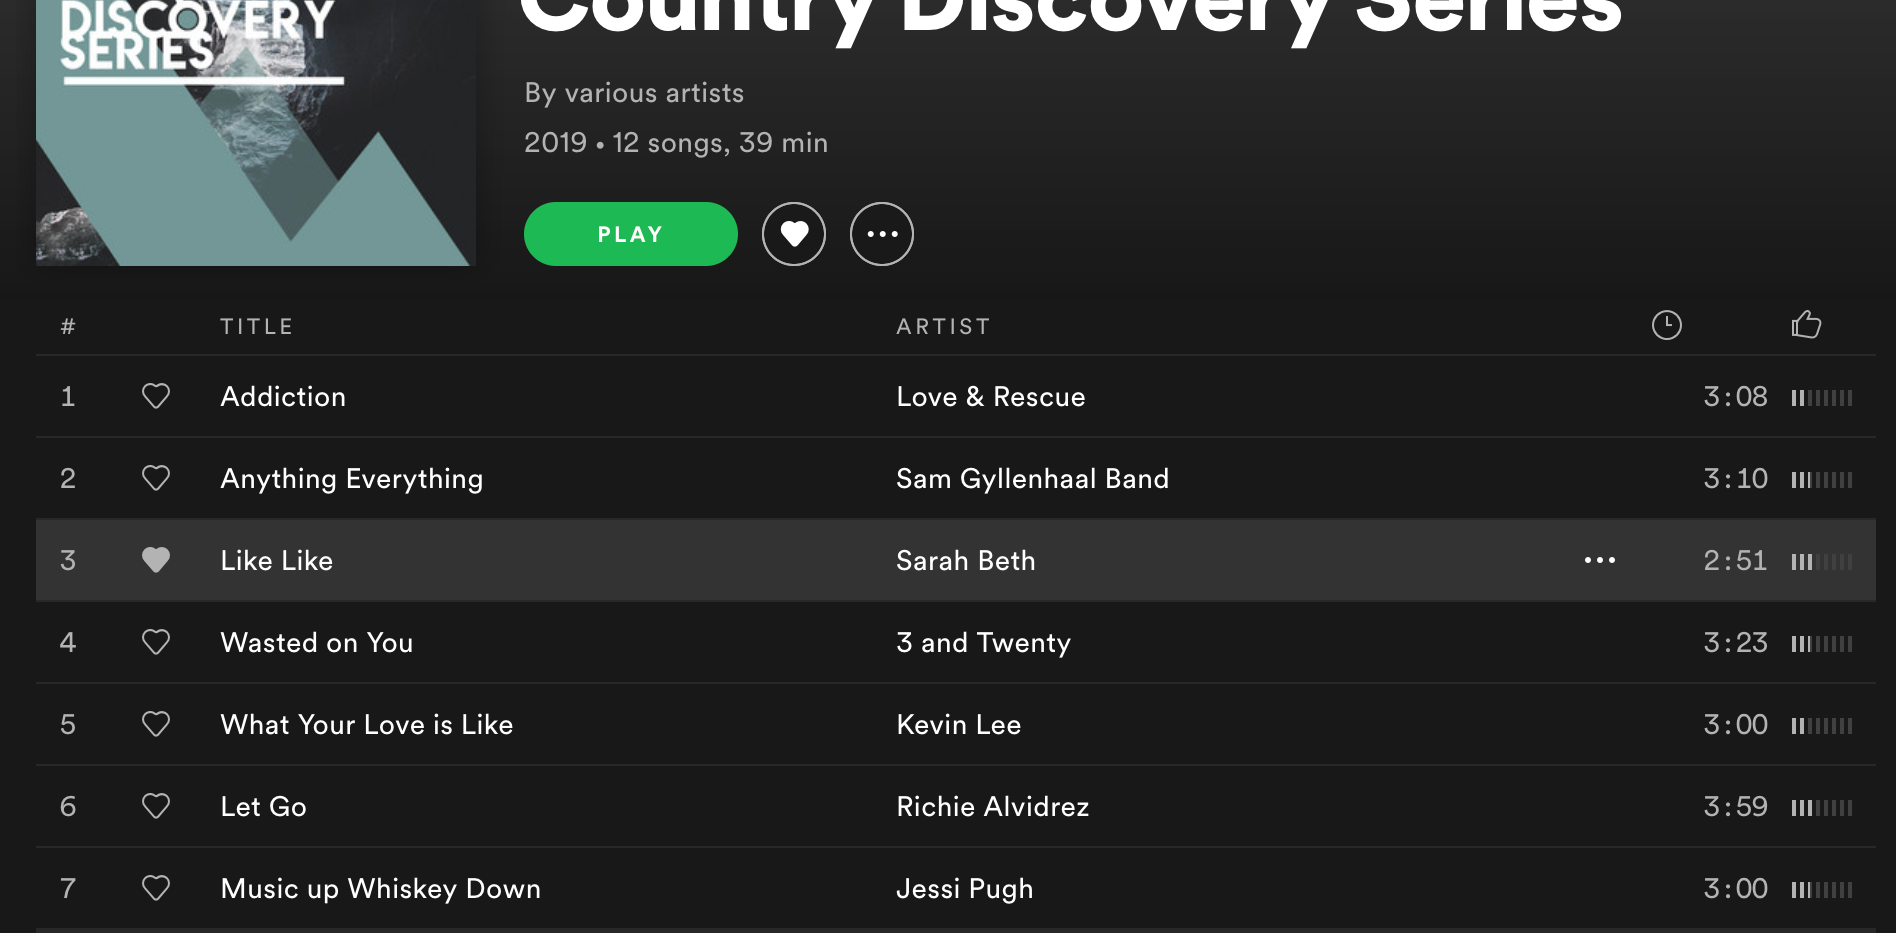 """Check out """"Like Like"""" on the Country Discovery Series by Silverado Records!"""